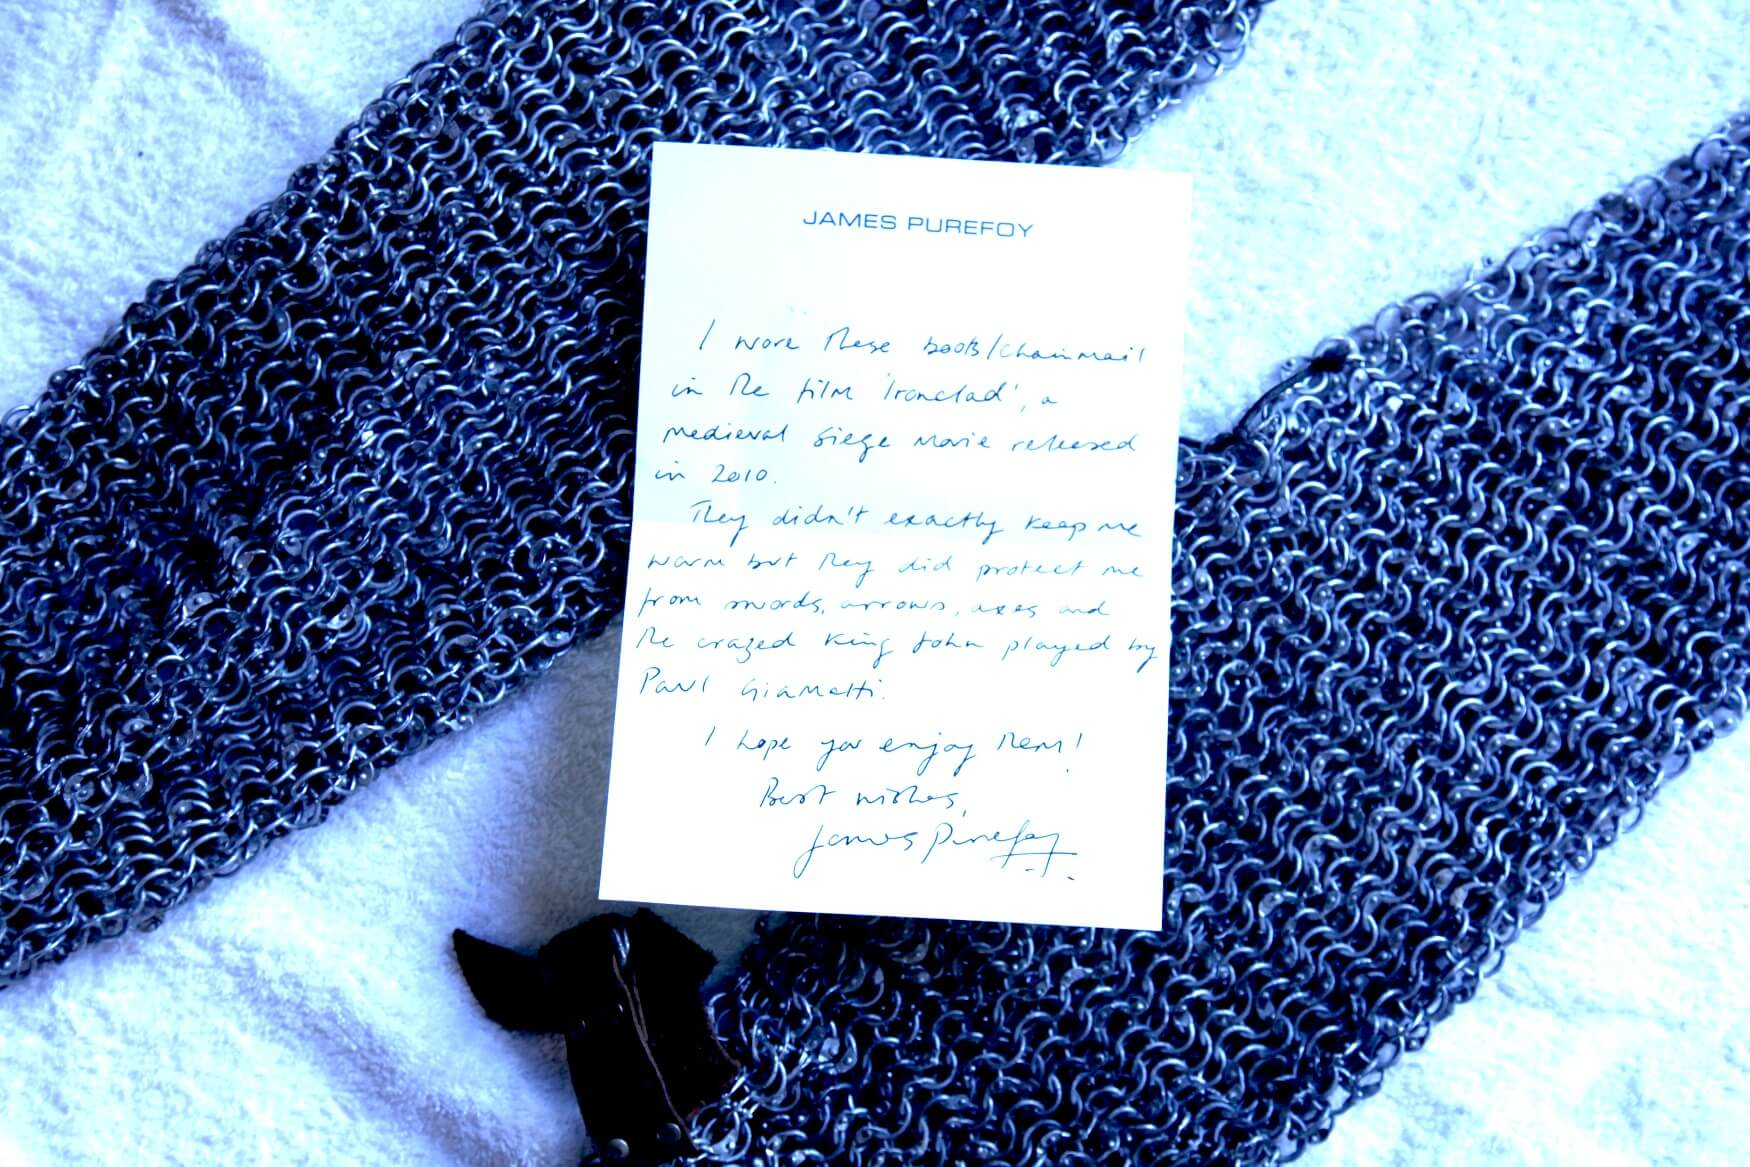 2011 He certainly didn't disappoint with his incredible donation of the authentic knight's chain-mail boots he wore on set filming Iron Clad.  He has even included a handwritten note.